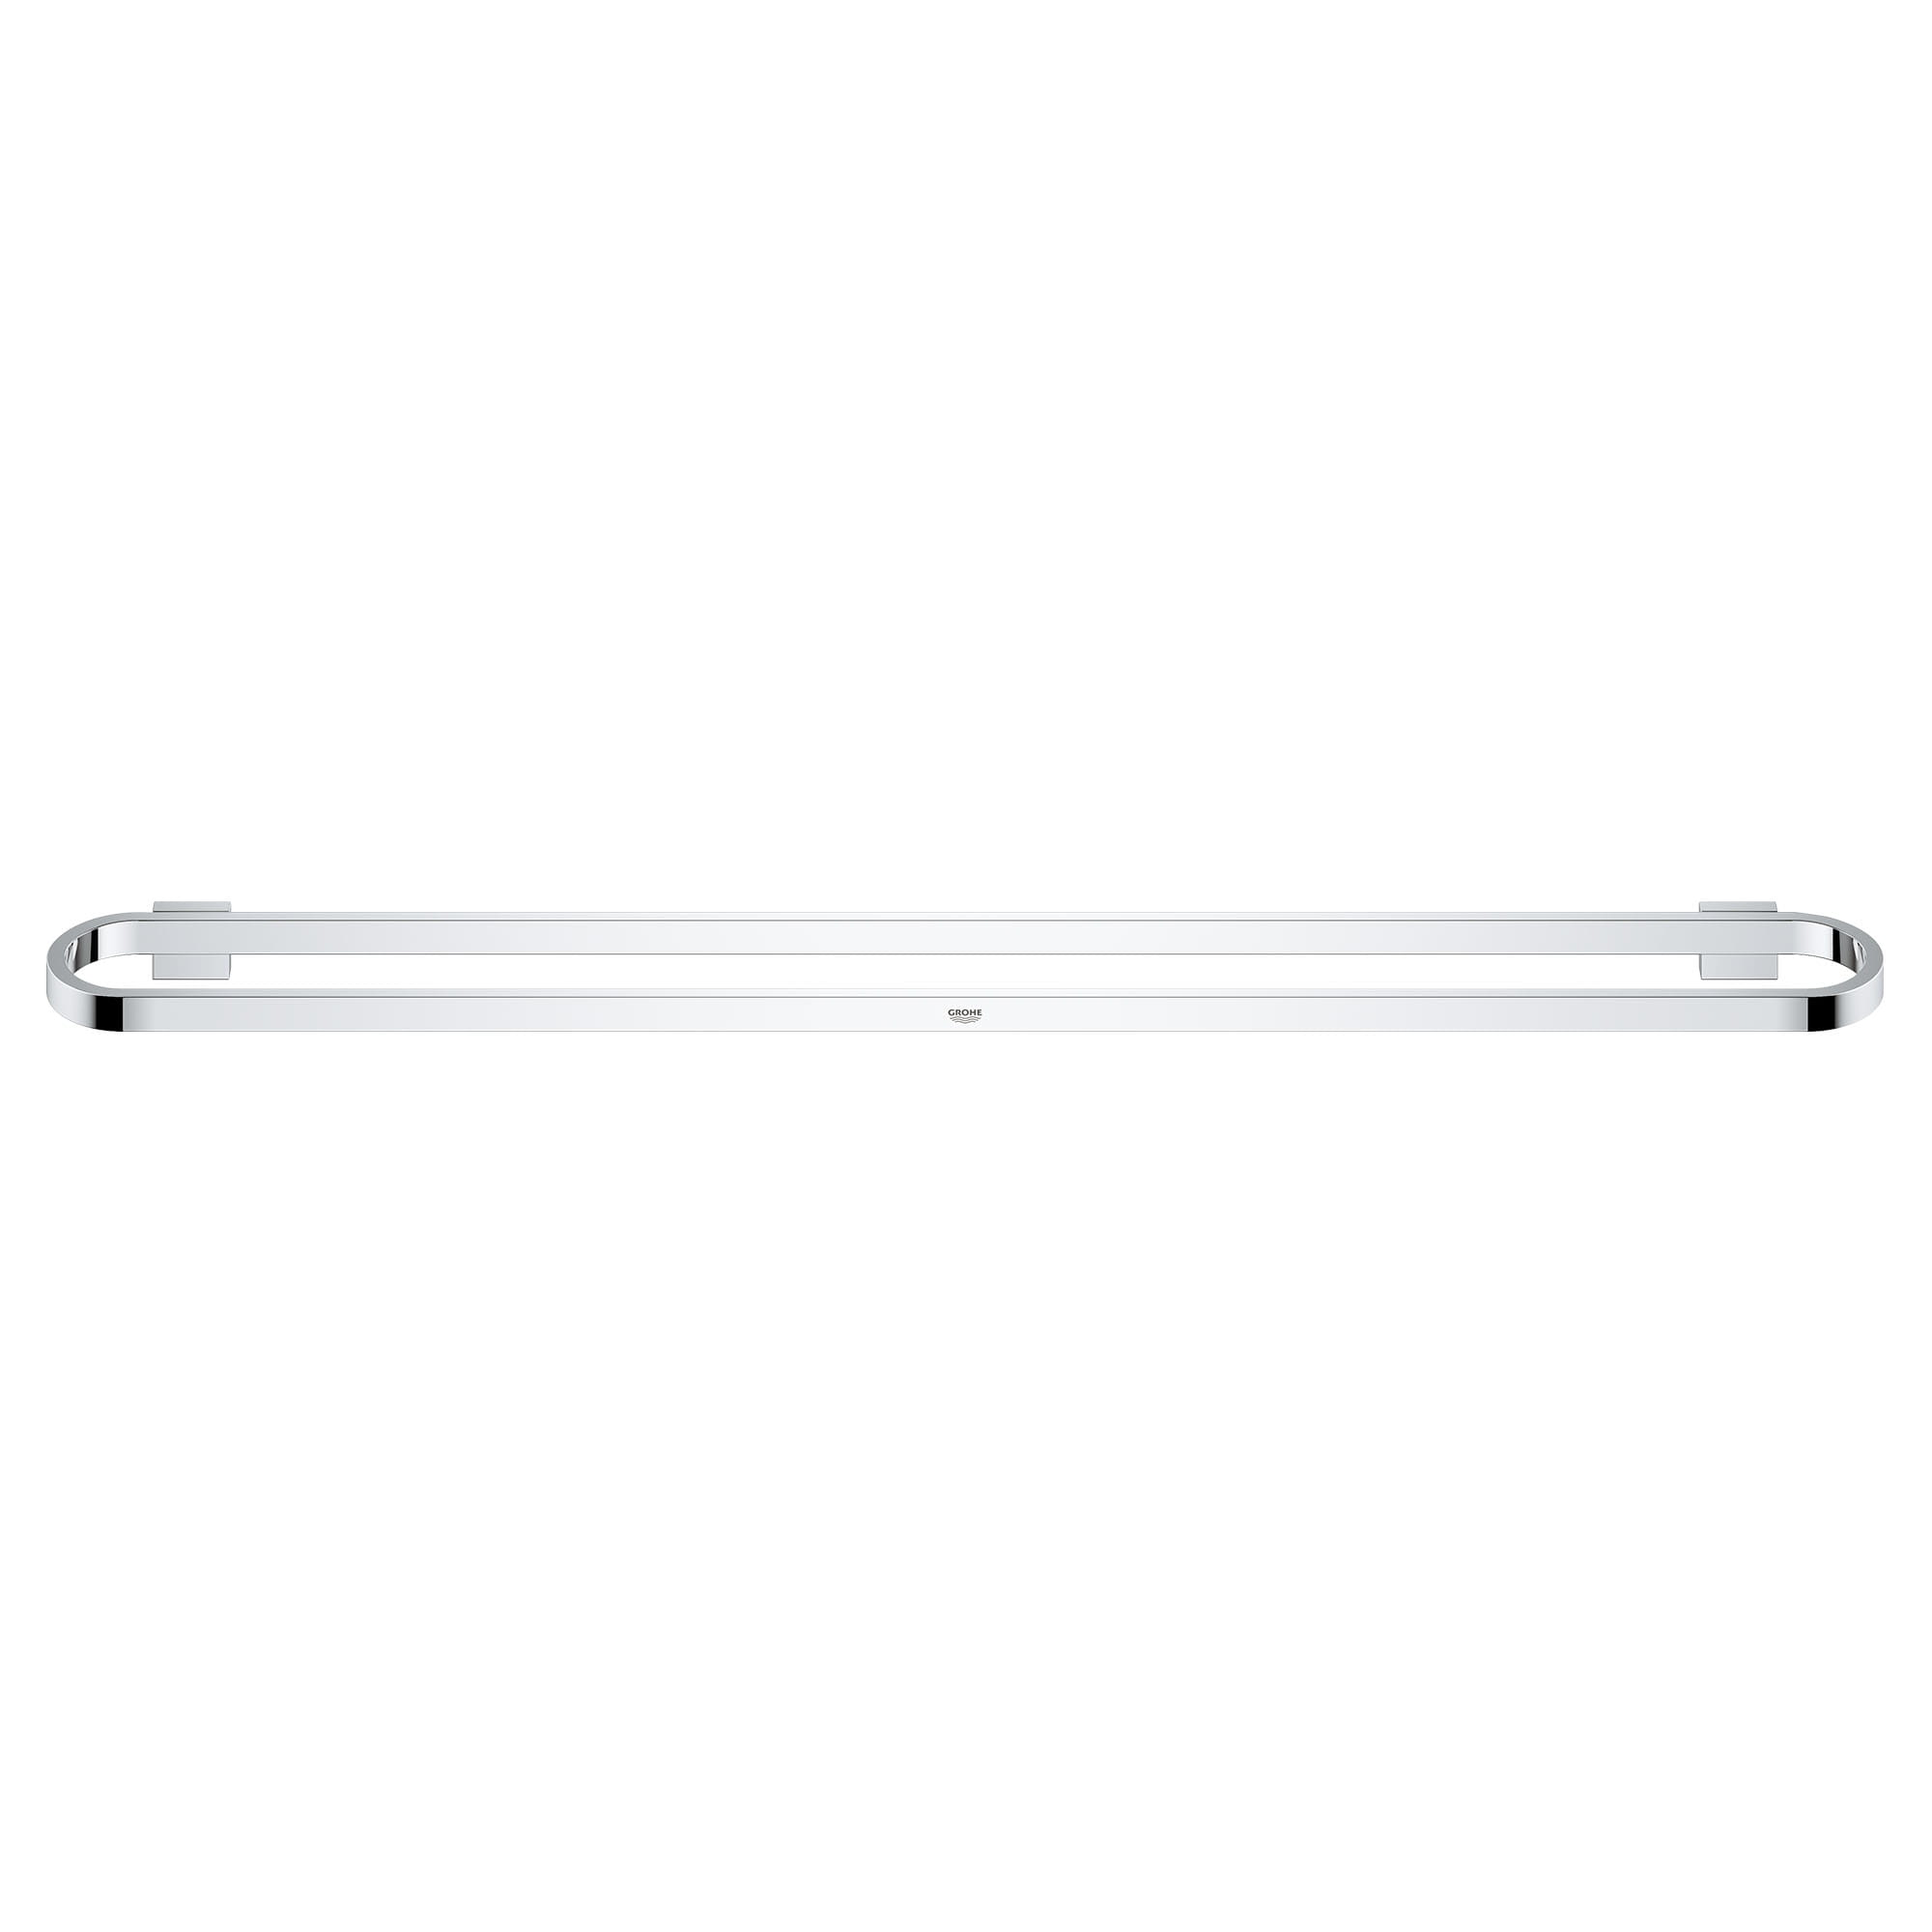 Porte serviettes 600mm 32 po GROHE CHROME